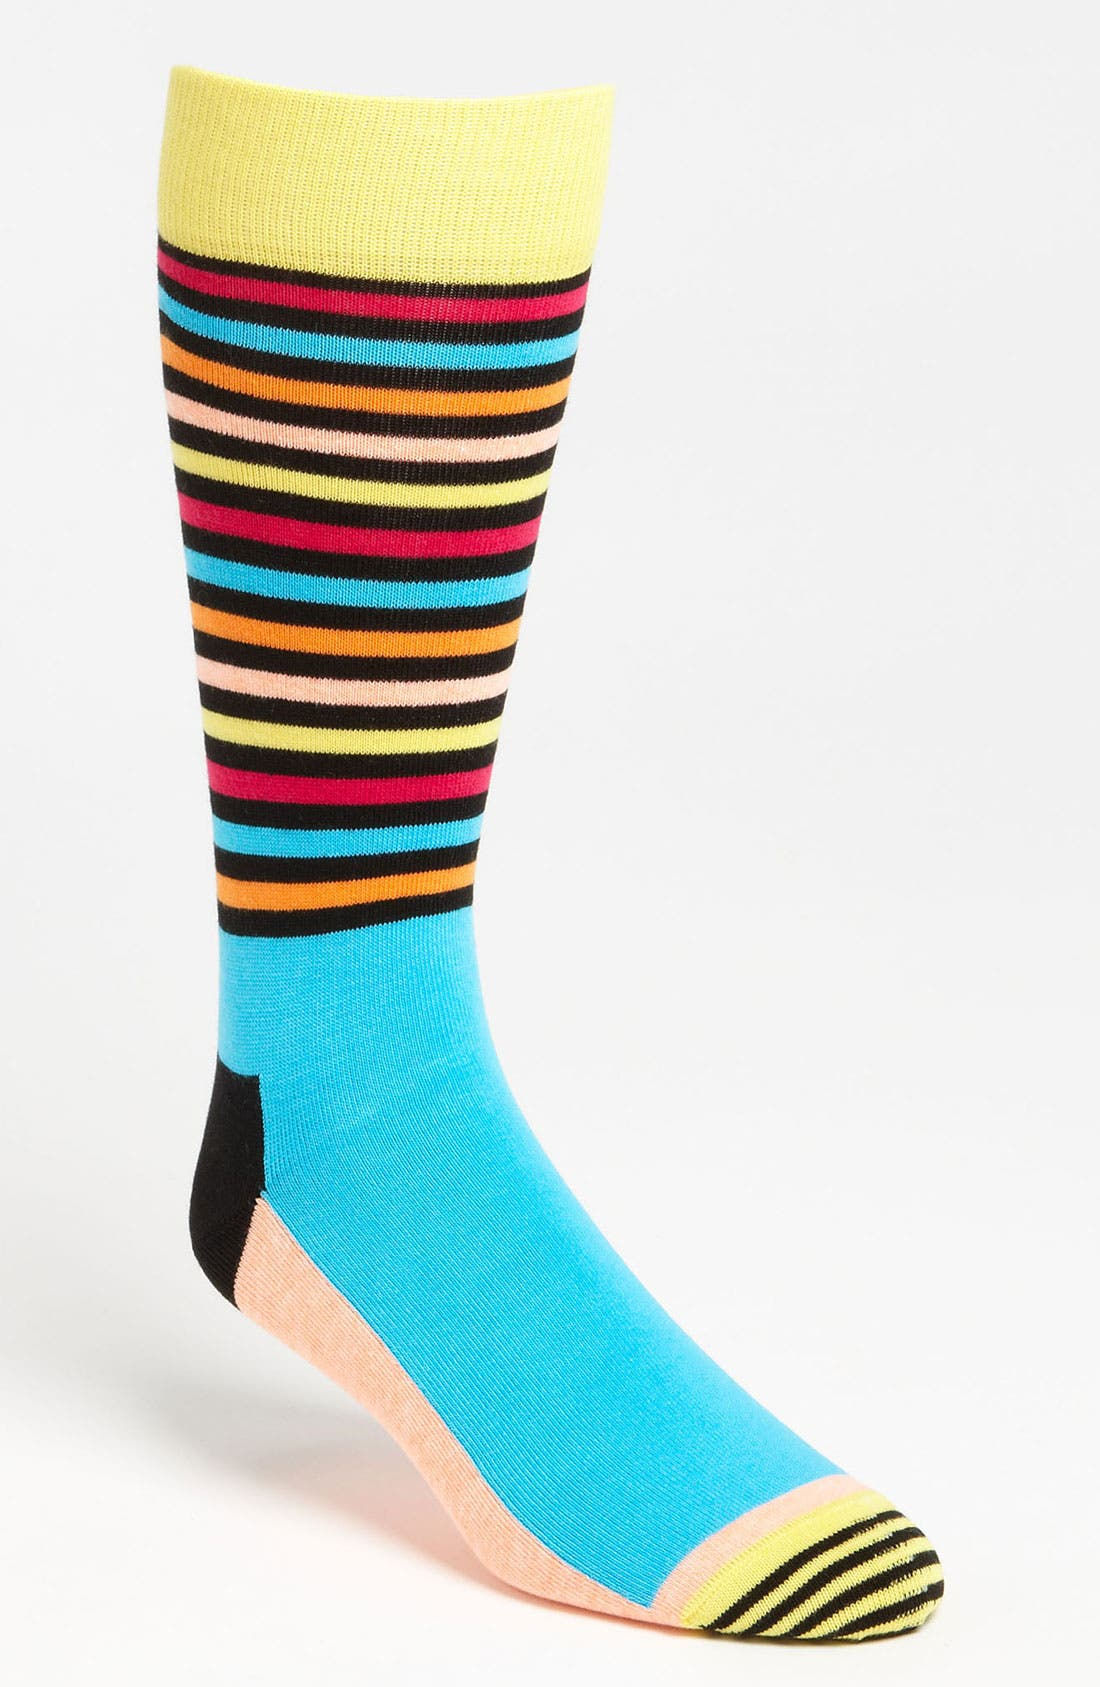 Main Image - Happy Socks Patterned Cotton Blend Socks